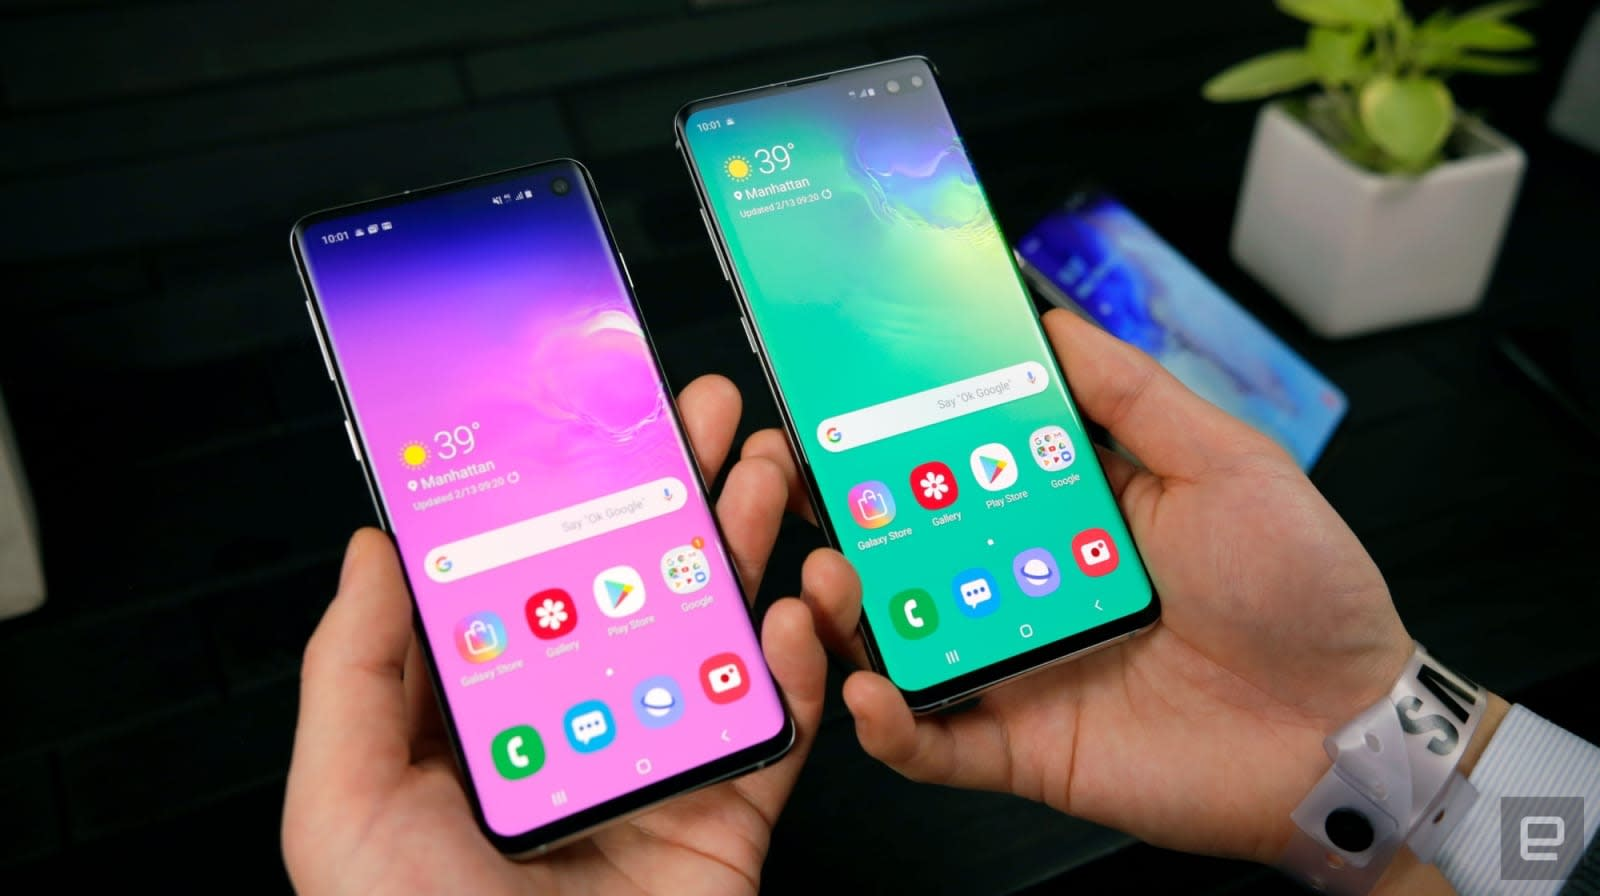 Samsung's Android 10 beta for Galaxy S10 phones starts soon